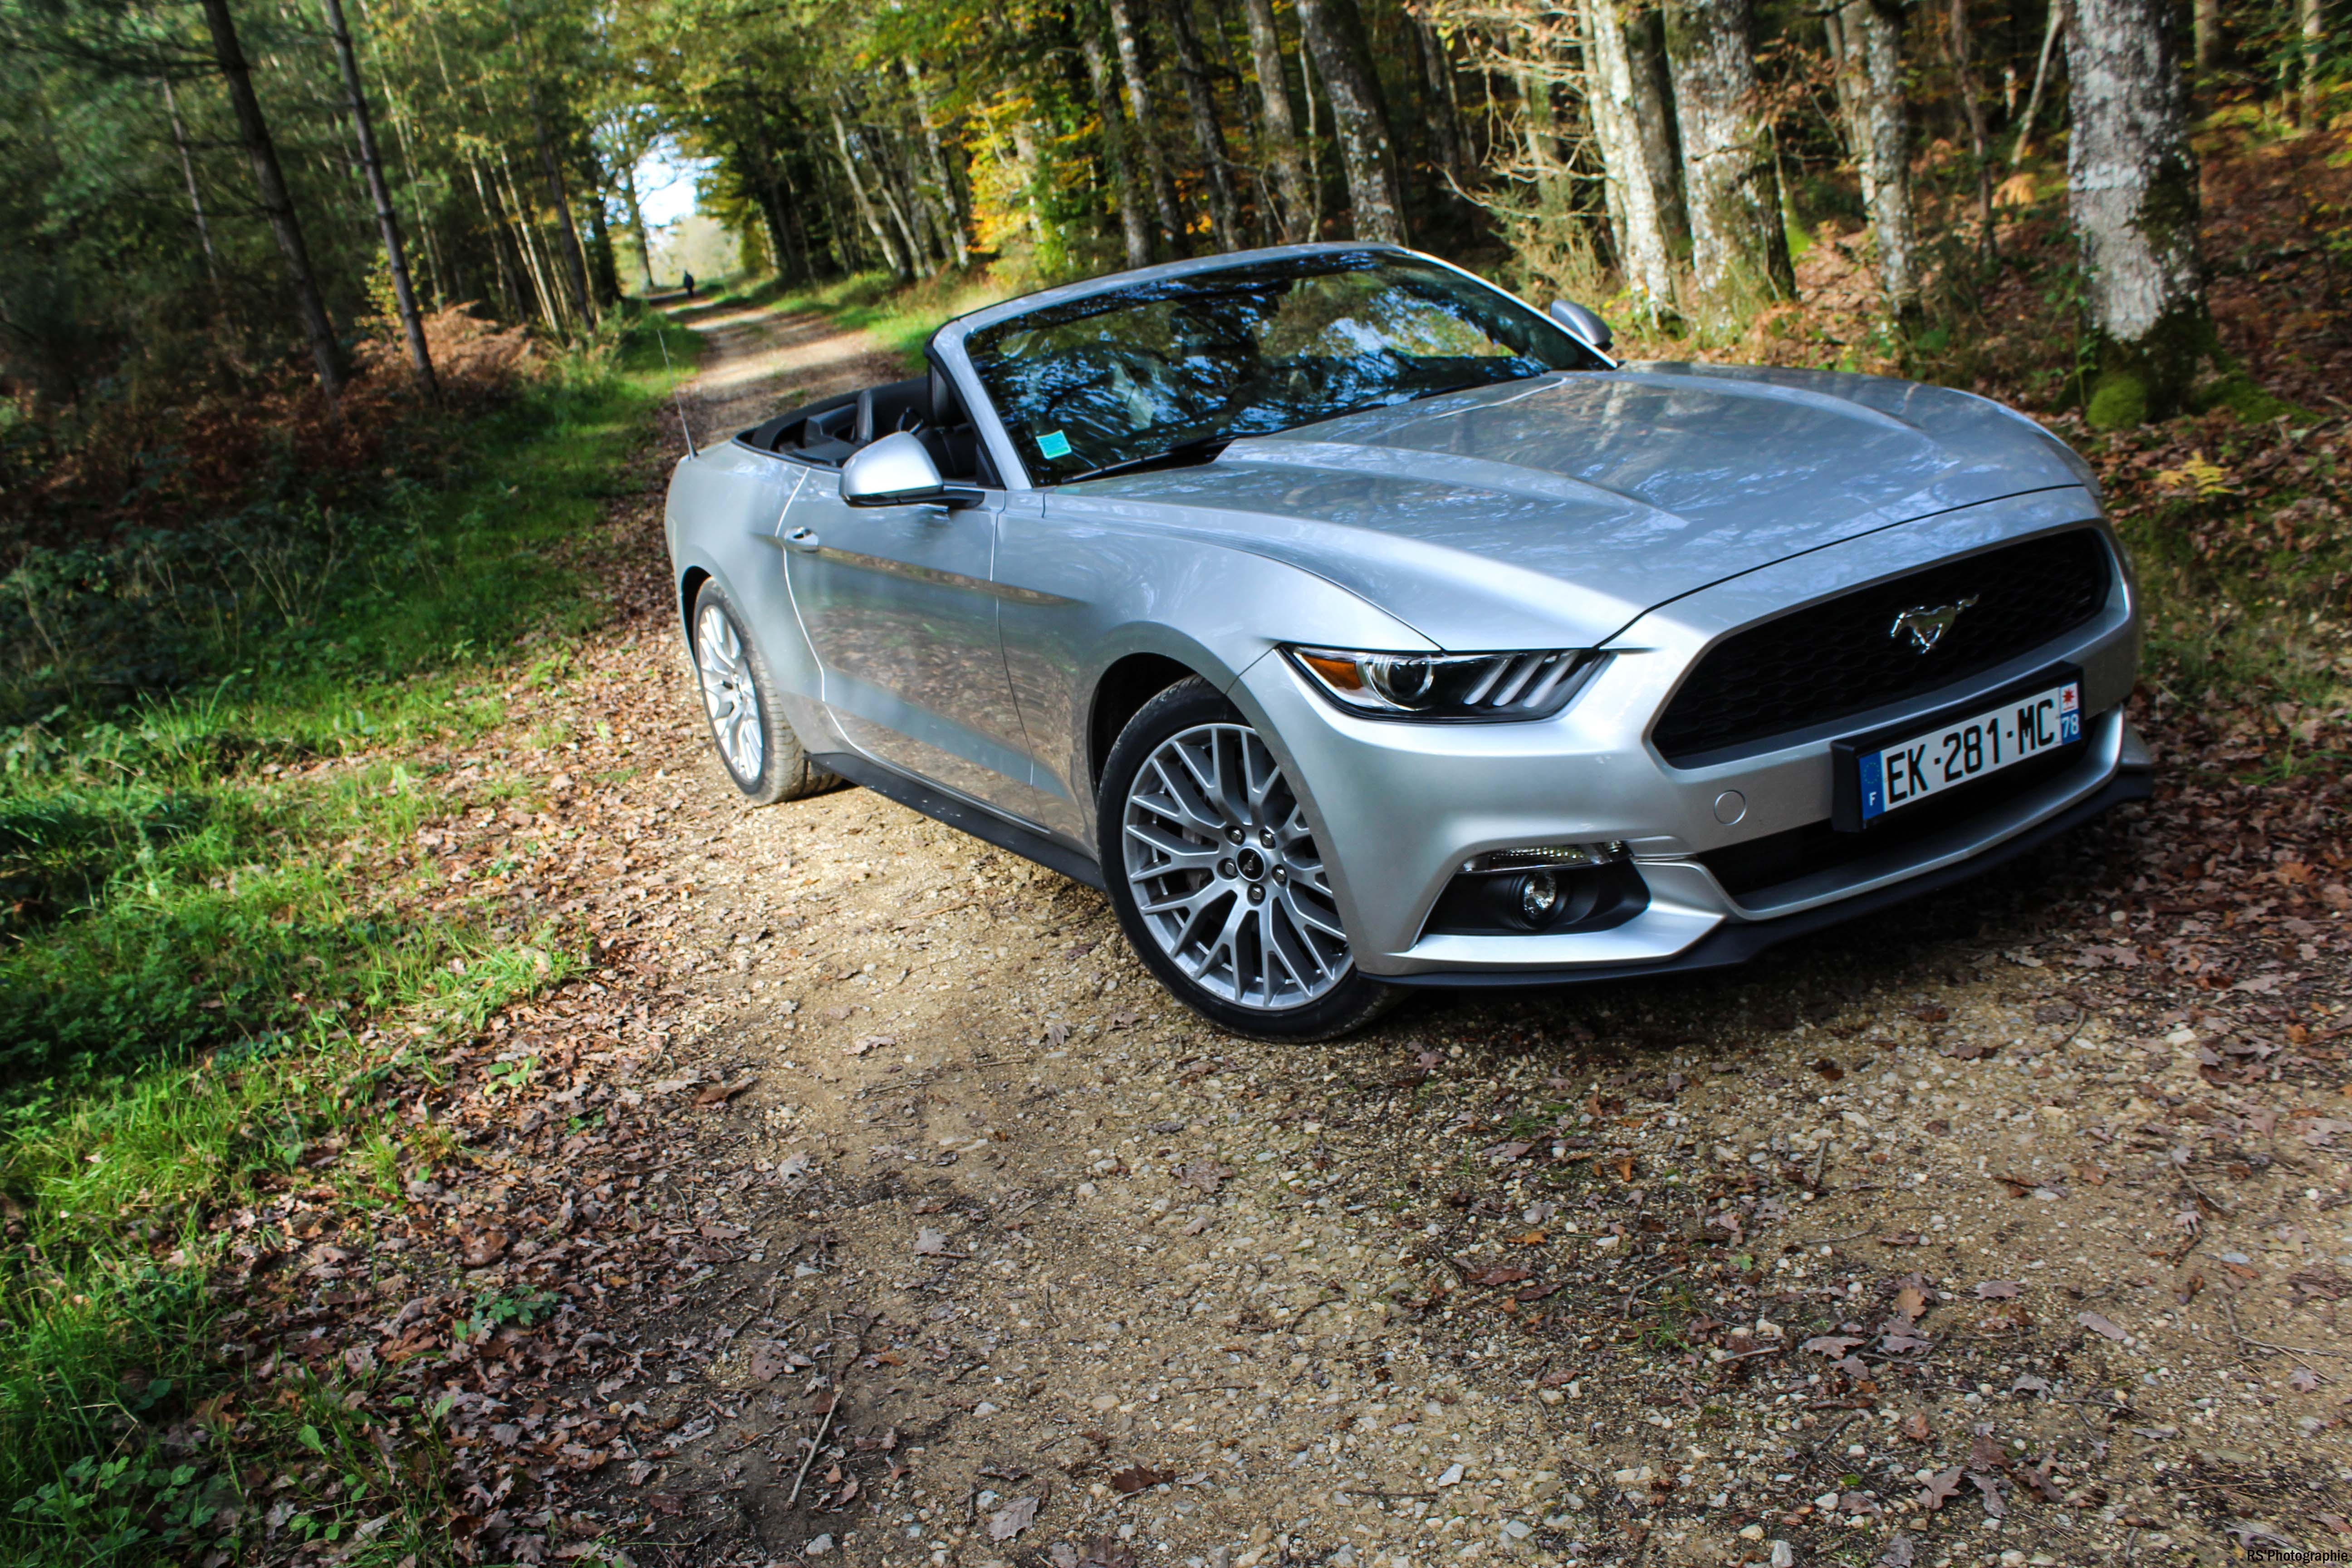 fordmustangeconvertible46-ford-mustang-convertible-ecoboost-avant-front-Arnaud Demasier-RSPhotographie